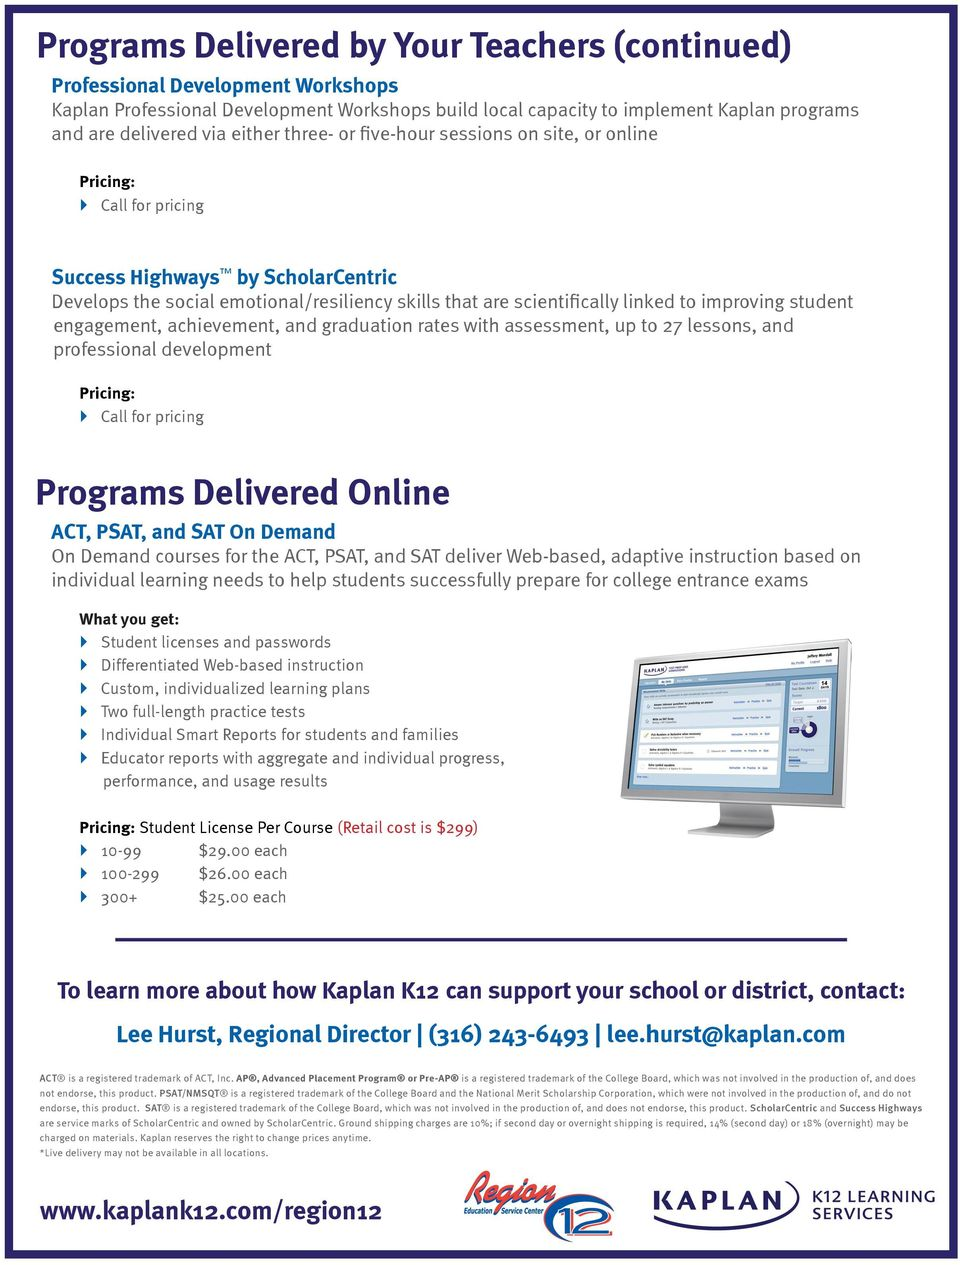 engagement, achievement, and graduation rates with assessment, up to 27 lessons, and professional development Programs Delivered Online ACT, PSAT, and SAT On Demand On Demand courses for the ACT,